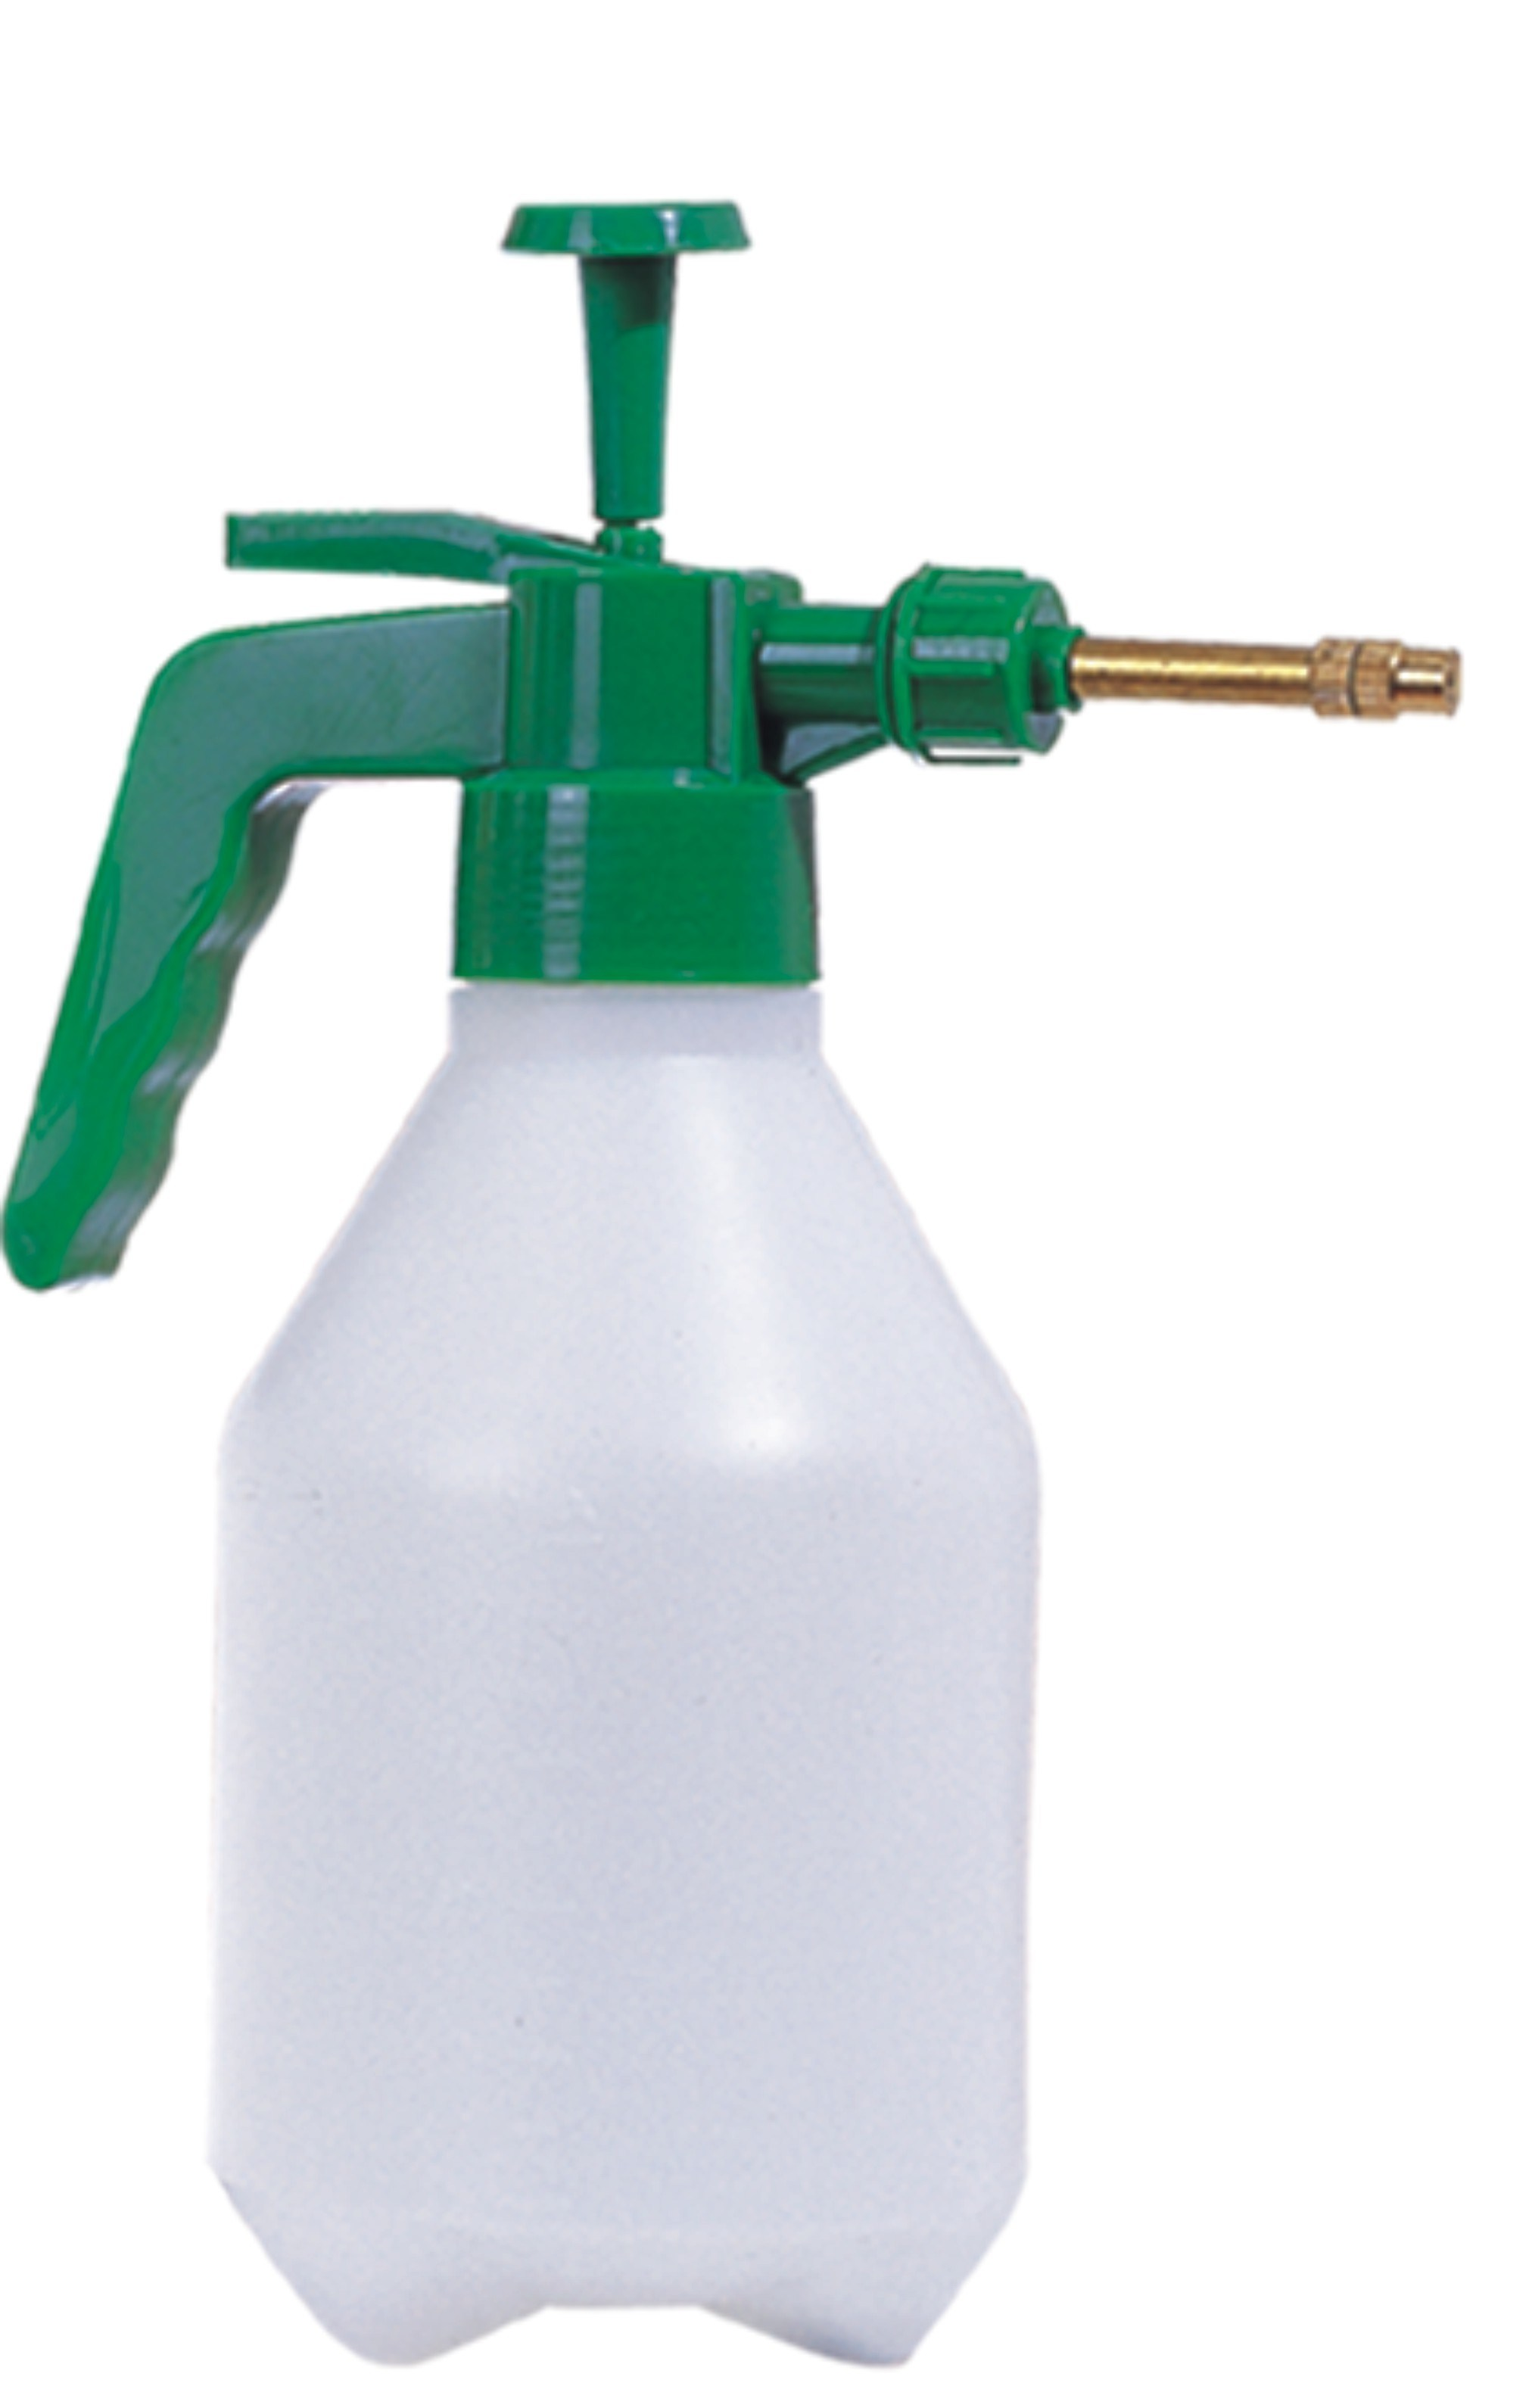 https://i1.wp.com/image.made-in-china.com/2f0j00vBzTokrIgZul/Hand-Held-Garden-Sprayer-NS-1-3-.jpg